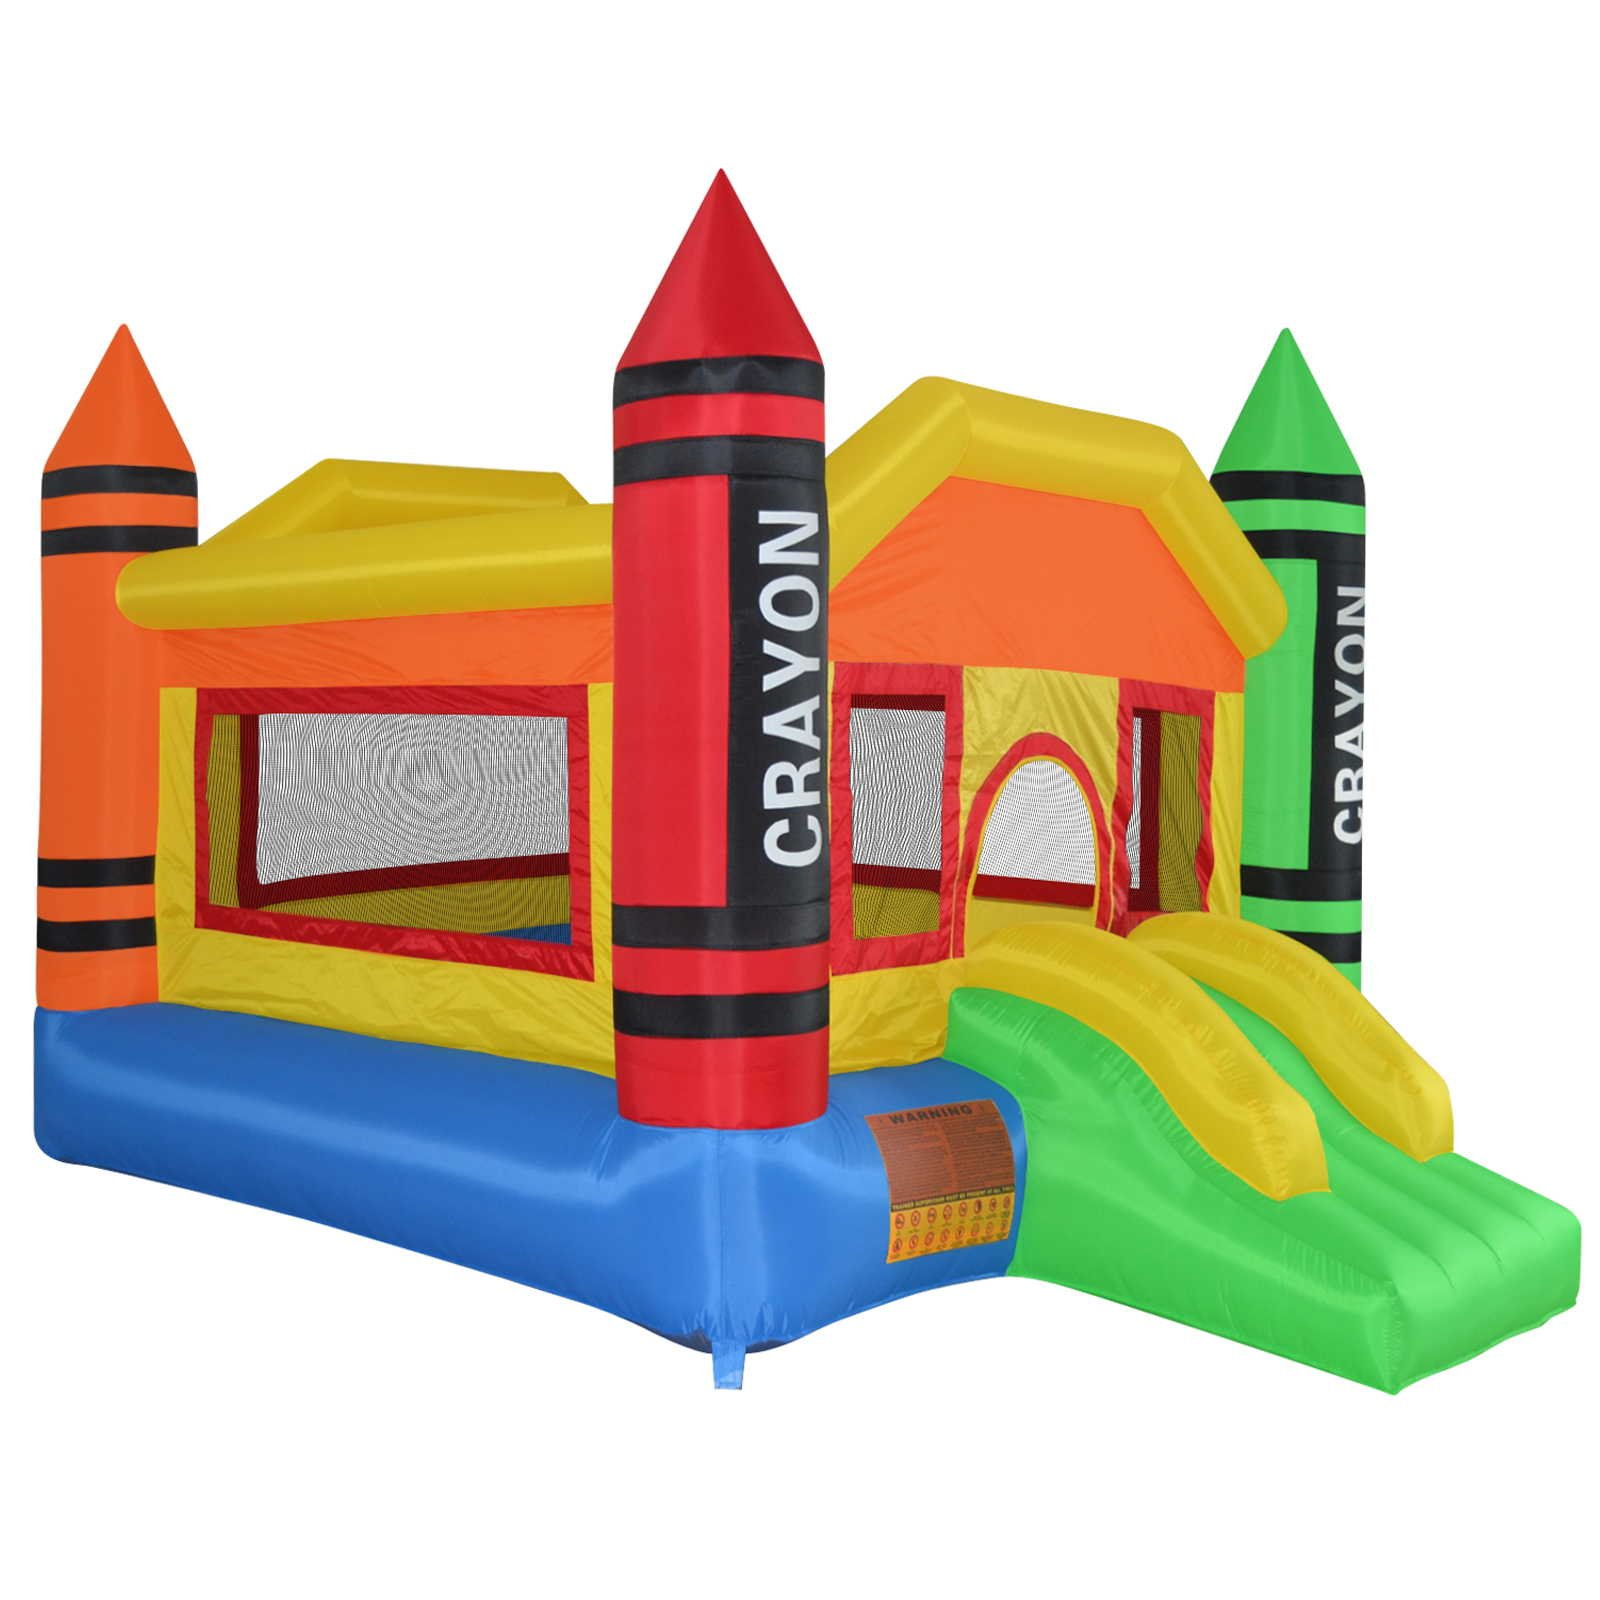 Cloud 9 Mighty Bounce House - Mini Crayon - Inflatable Kids Jumper with Blower by Cloud 9 (Image #1)